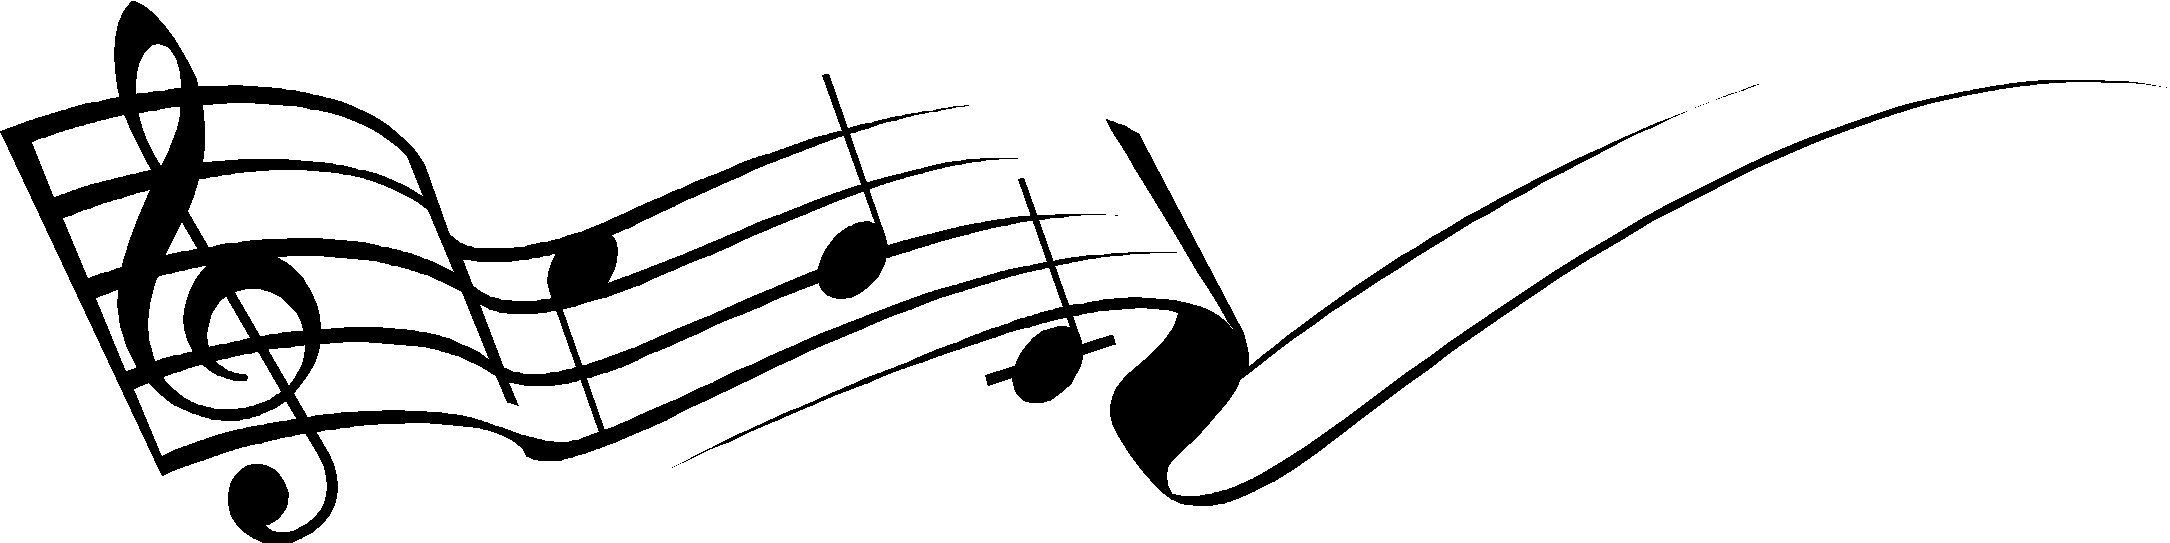 2170x543 Music Border Musical Borders Music Note Border Clipart